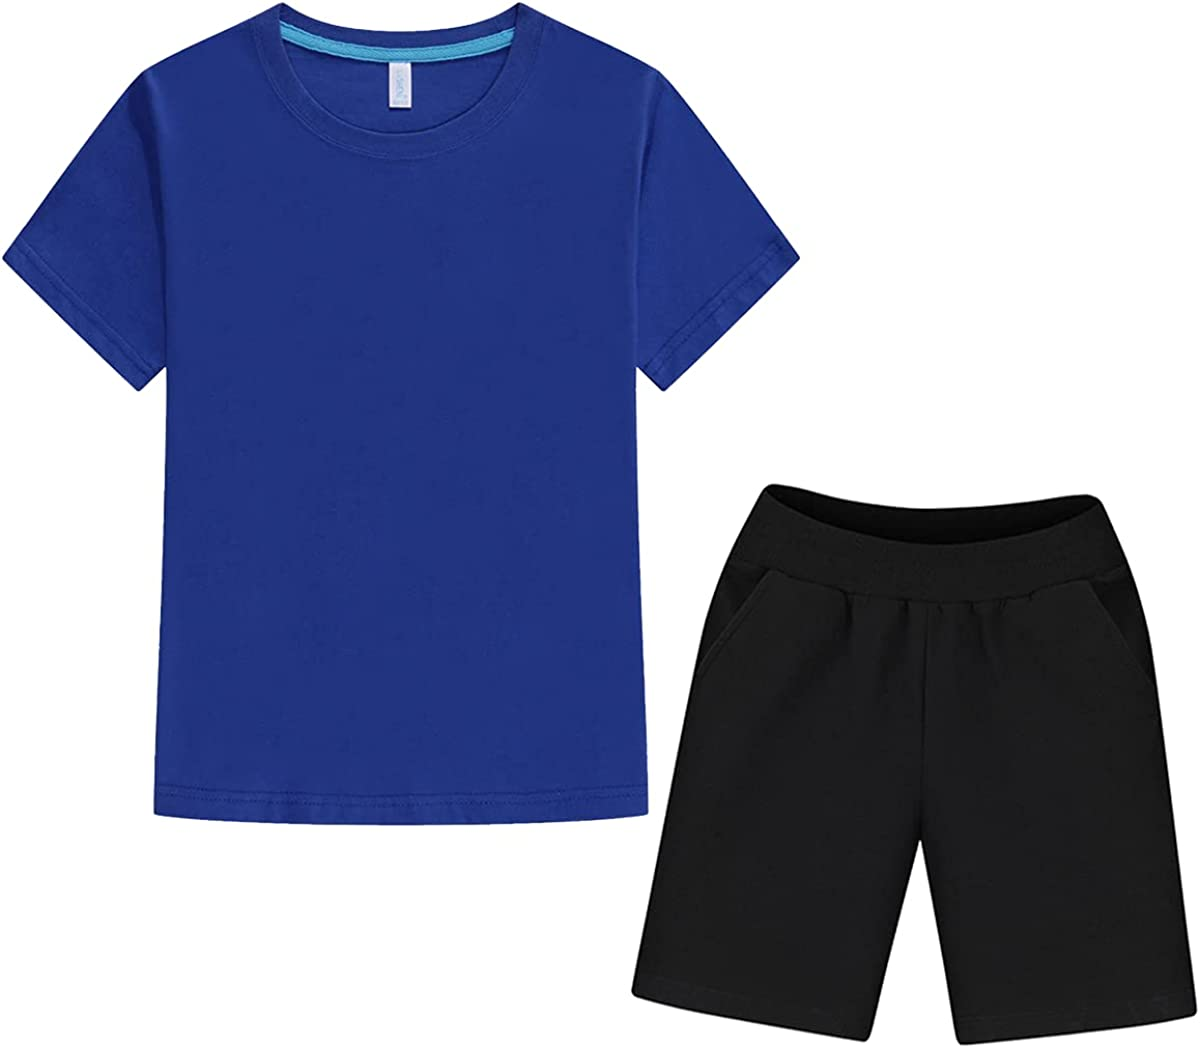 AKVIEII Boys' Summer Short-Sleeve T-Shirt Set 18 Shorts At the price of Max 86% OFF surprise M Size